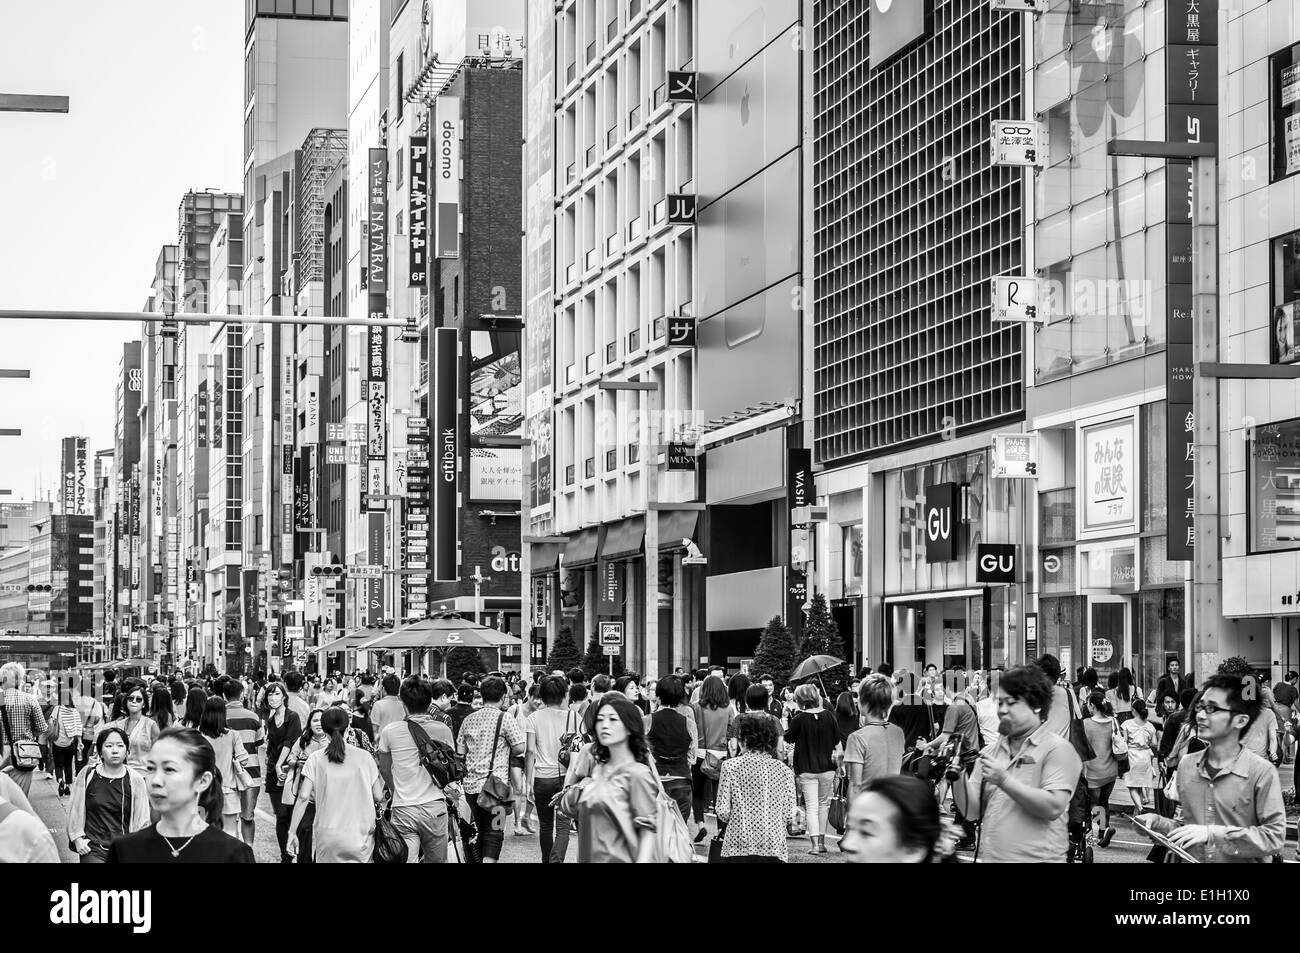 Shoppers wander the streets of Ginza in Tokyo, Japan. - Stock Image